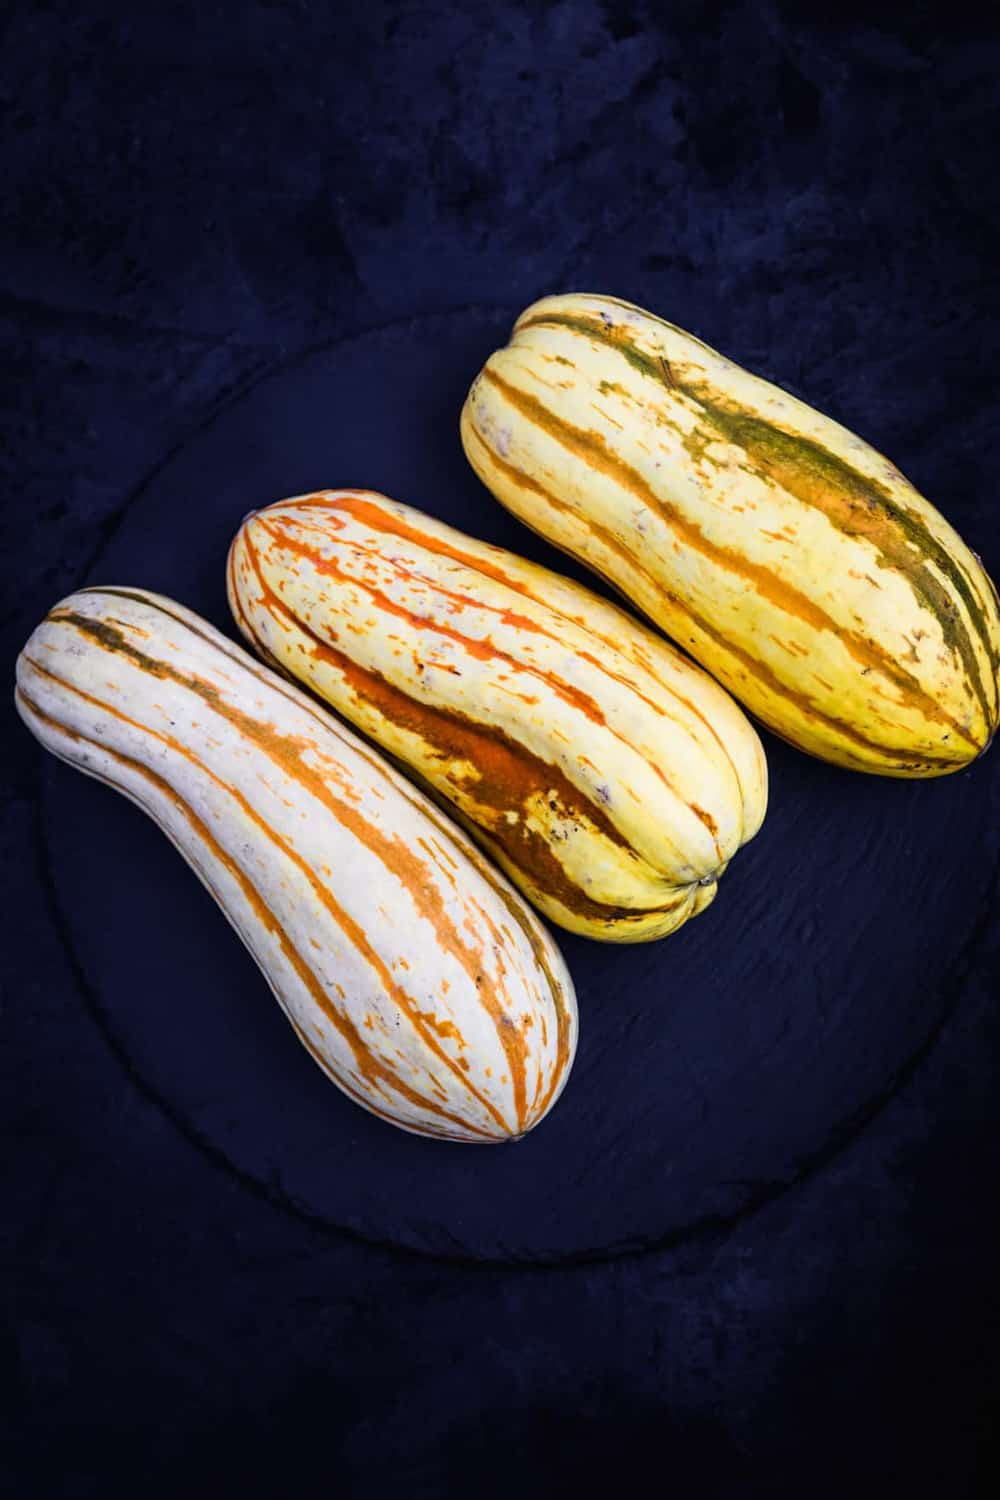 3 whole Delicata Squashes, on a black slate, on a black background. Overhead shot.